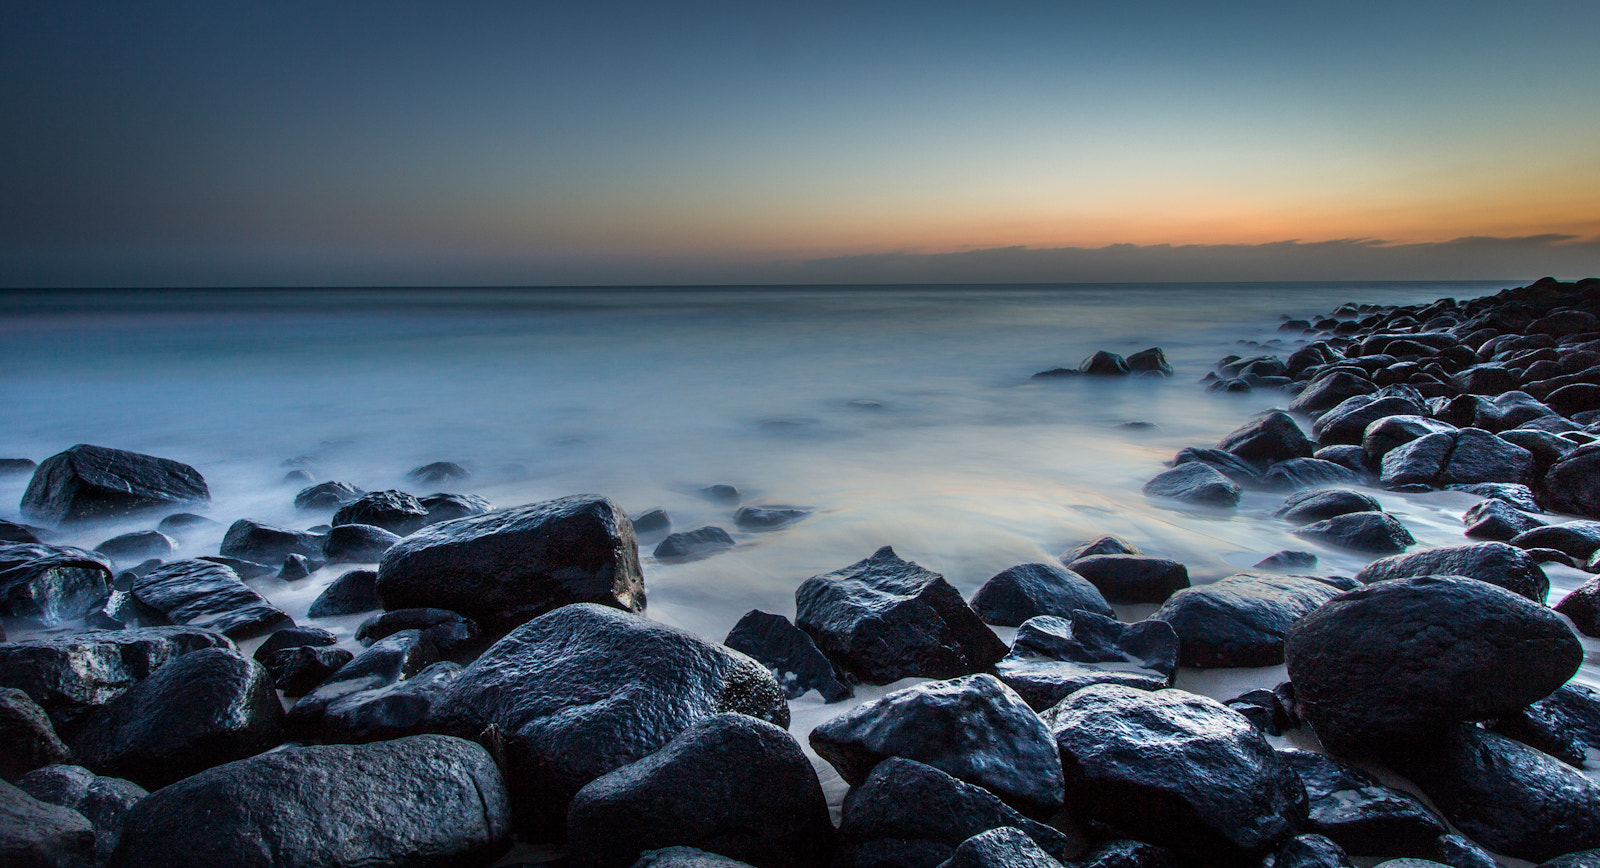 Photograph Slow flow by Daniel Treadwell on 500px